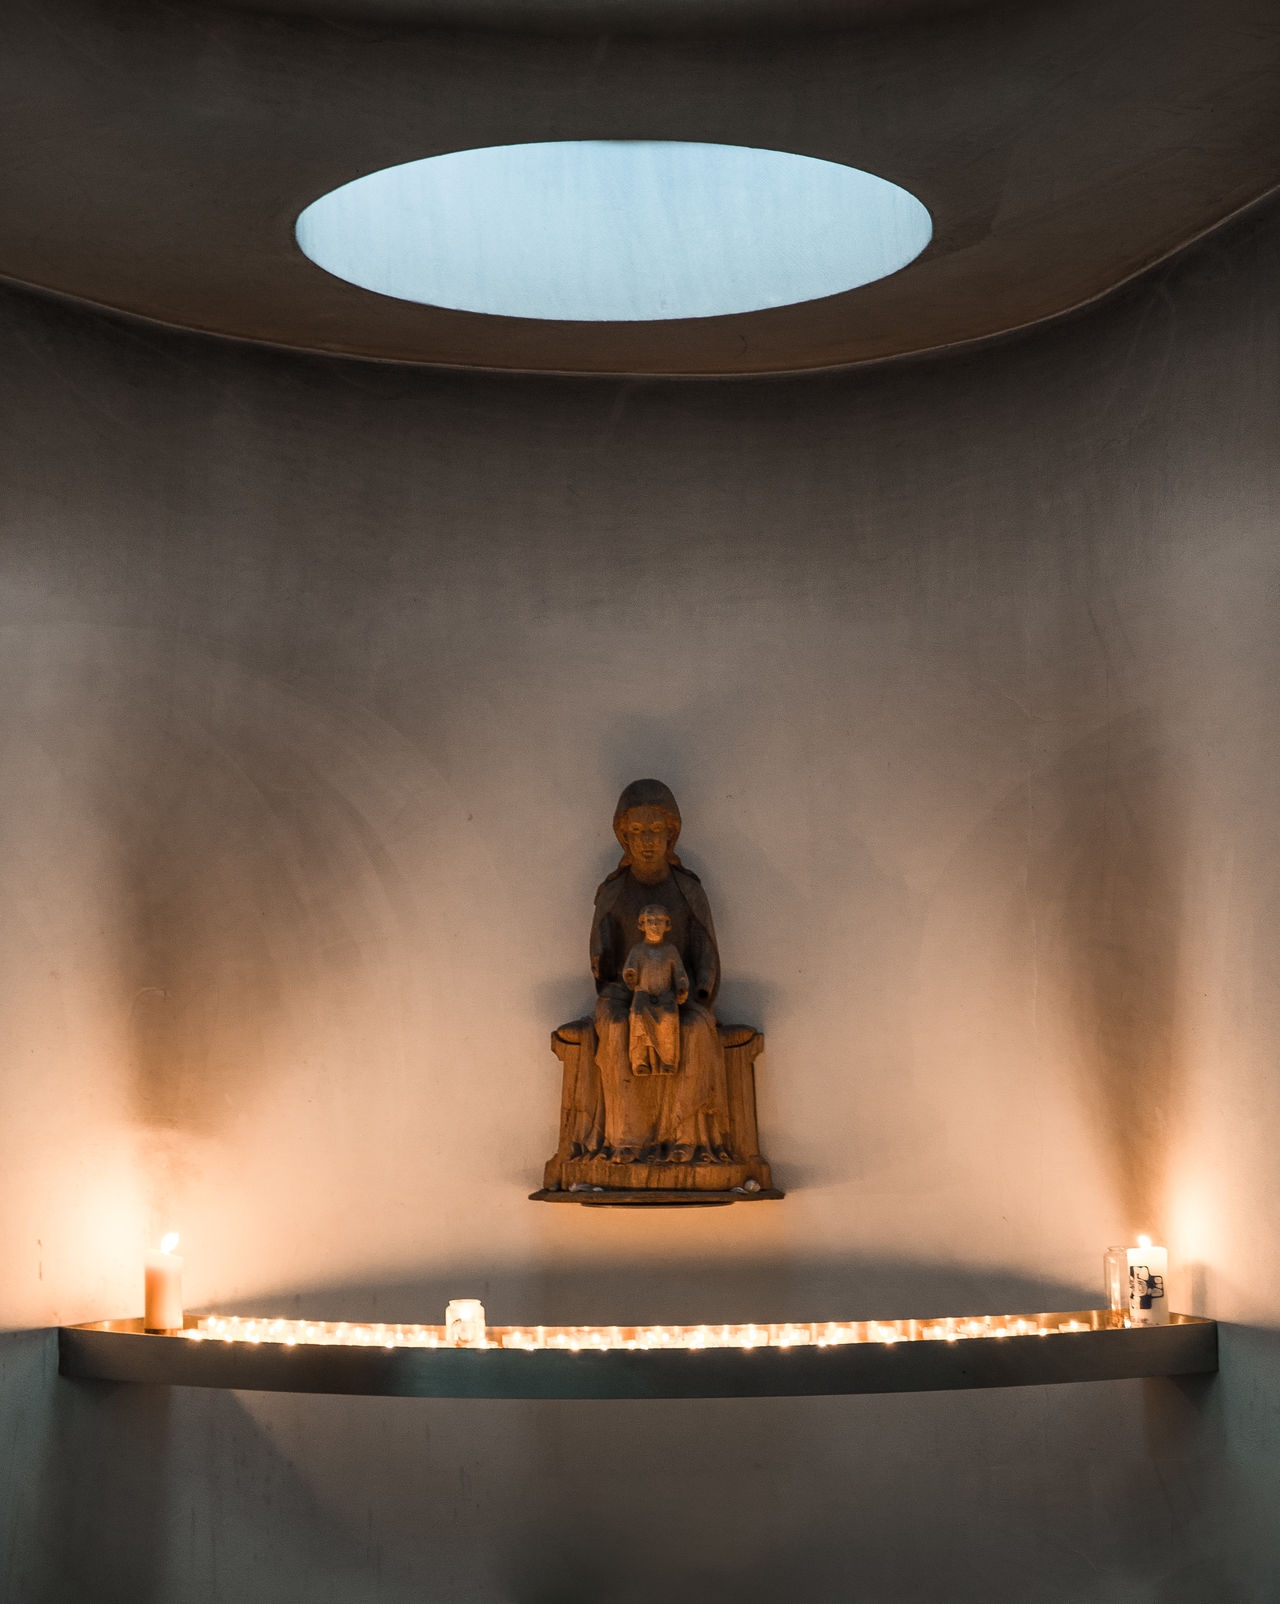 Candle Candlelight Christian Christianity Church Church Architecture Concrete God's Beauty Human Representation Illuminated Indoors  Maria Minimal Minimalism Minimalist Architecture Minimalobsession Modern Architecture Place Of Worship Religion Sculpture Skylight Smoke Soot Spirituality Statue